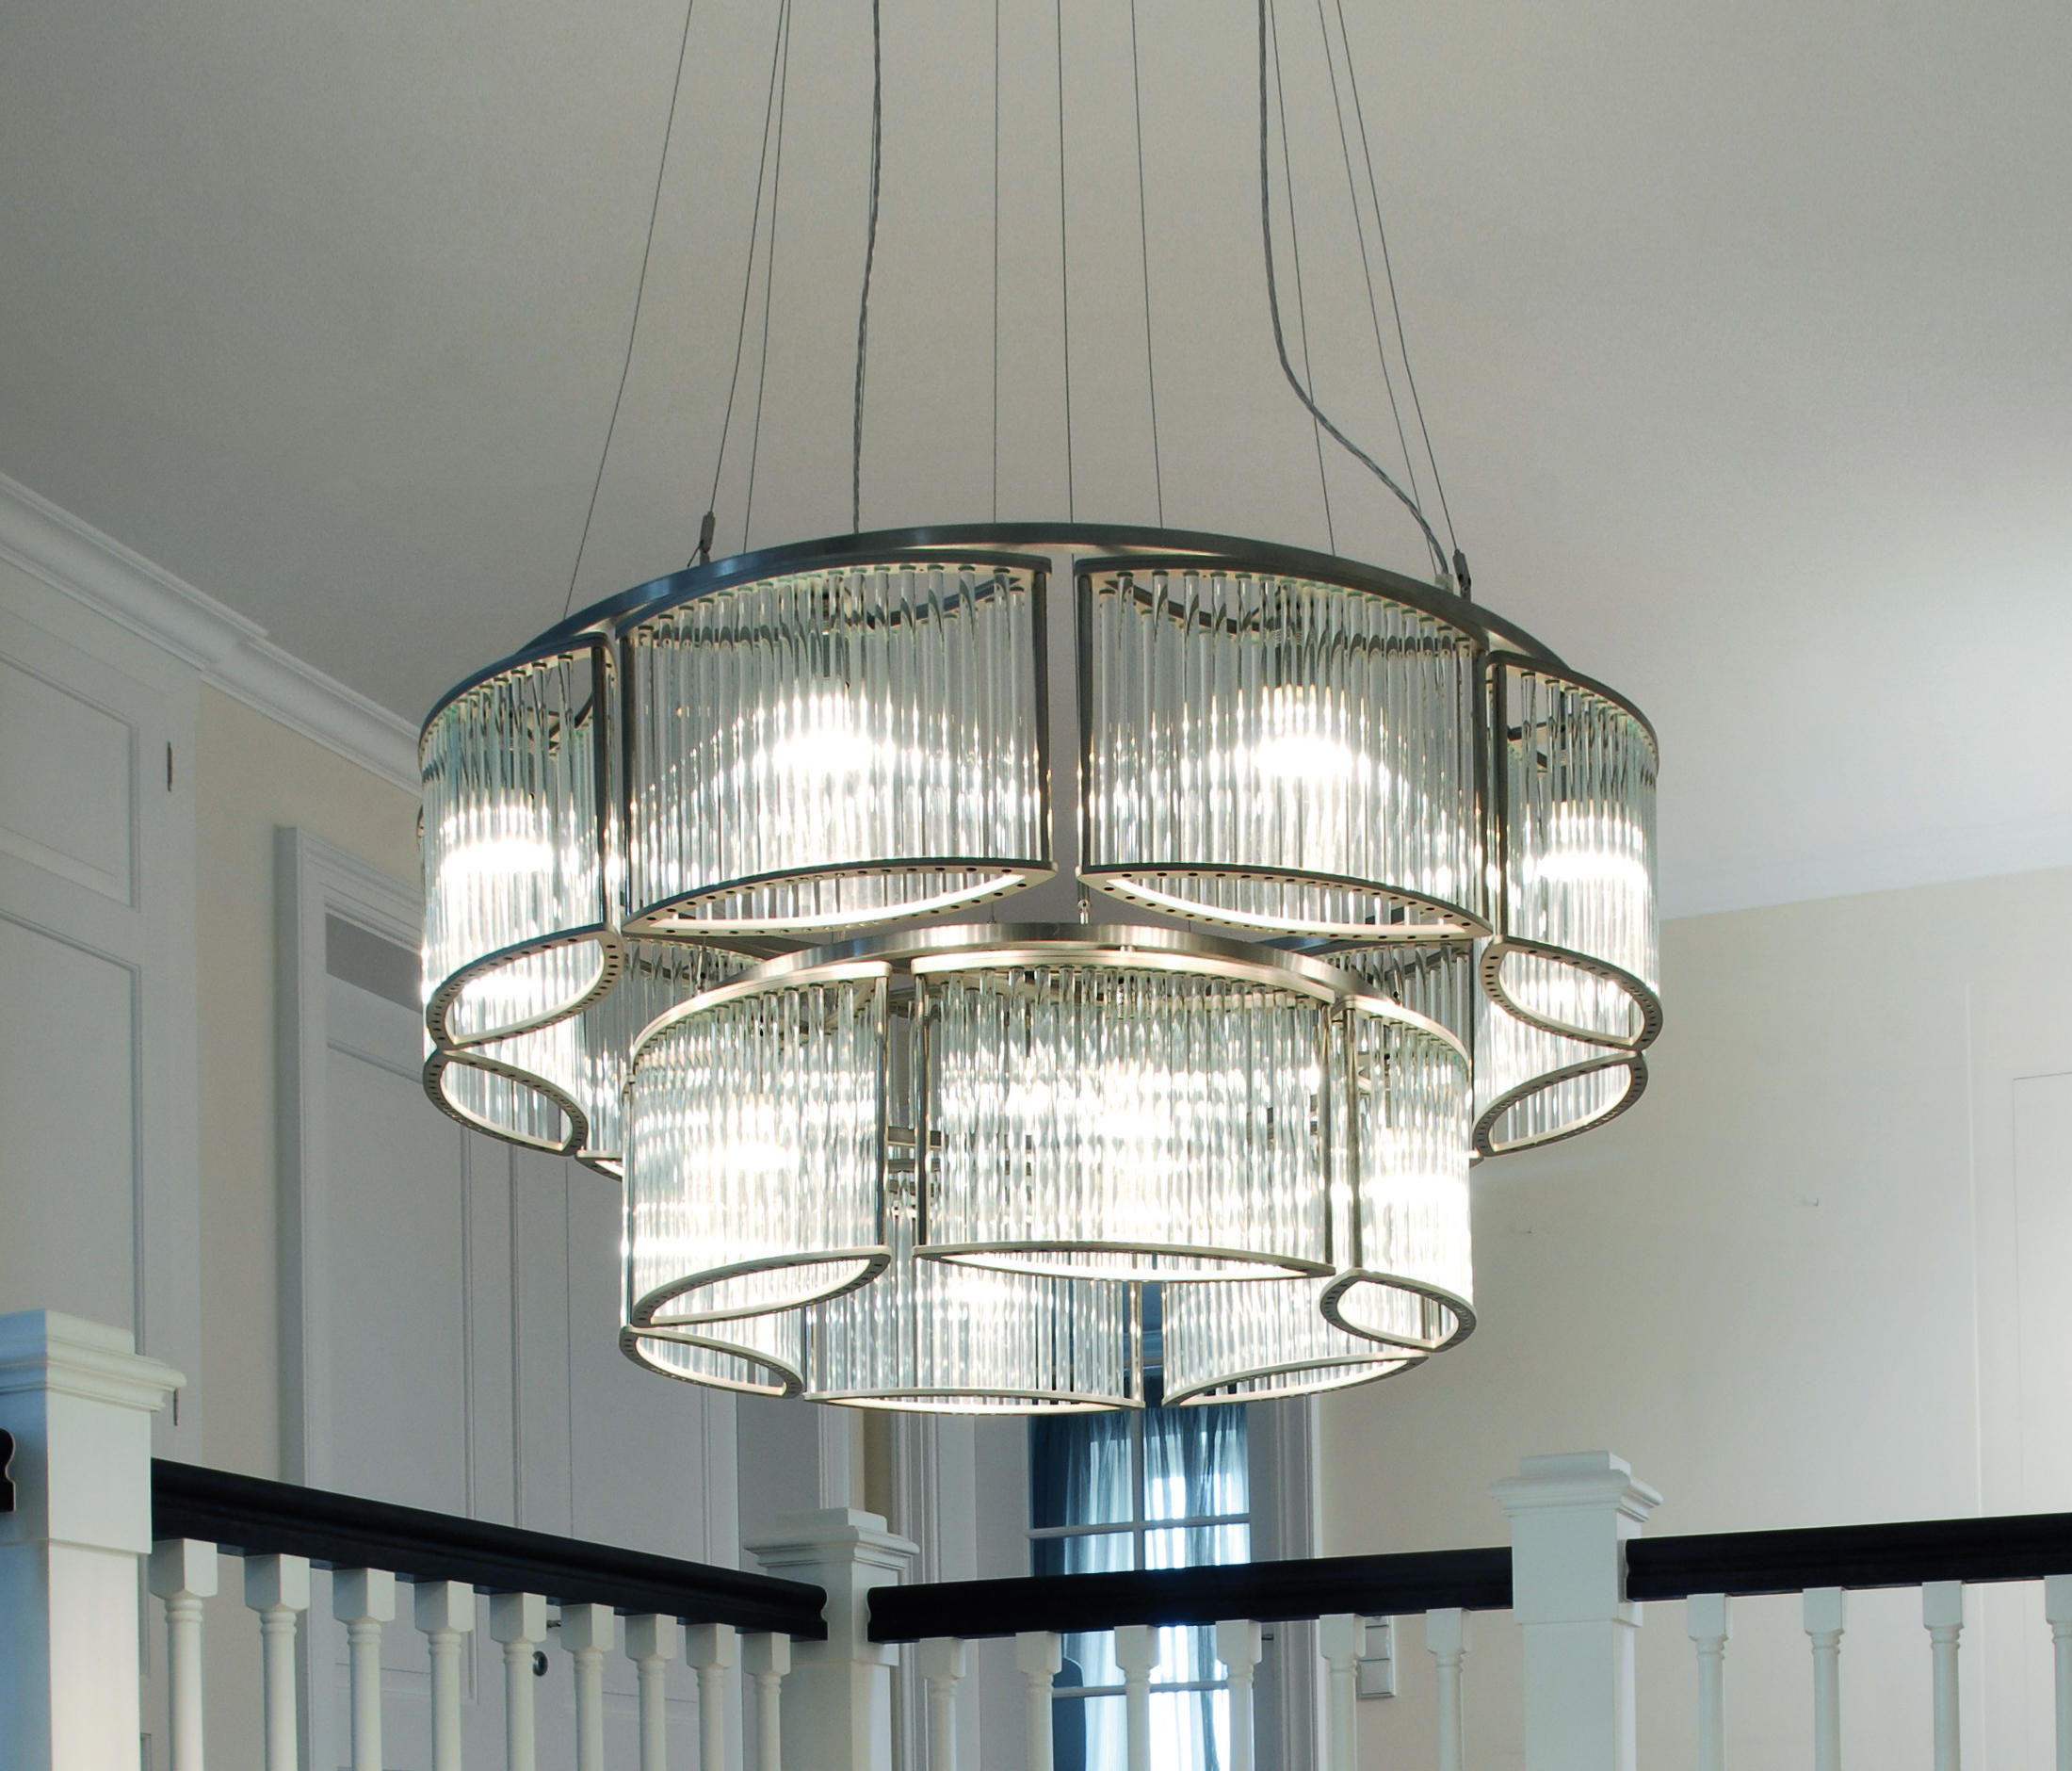 STILIO 9/6 - Ceiling suspended chandeliers from Licht im ...